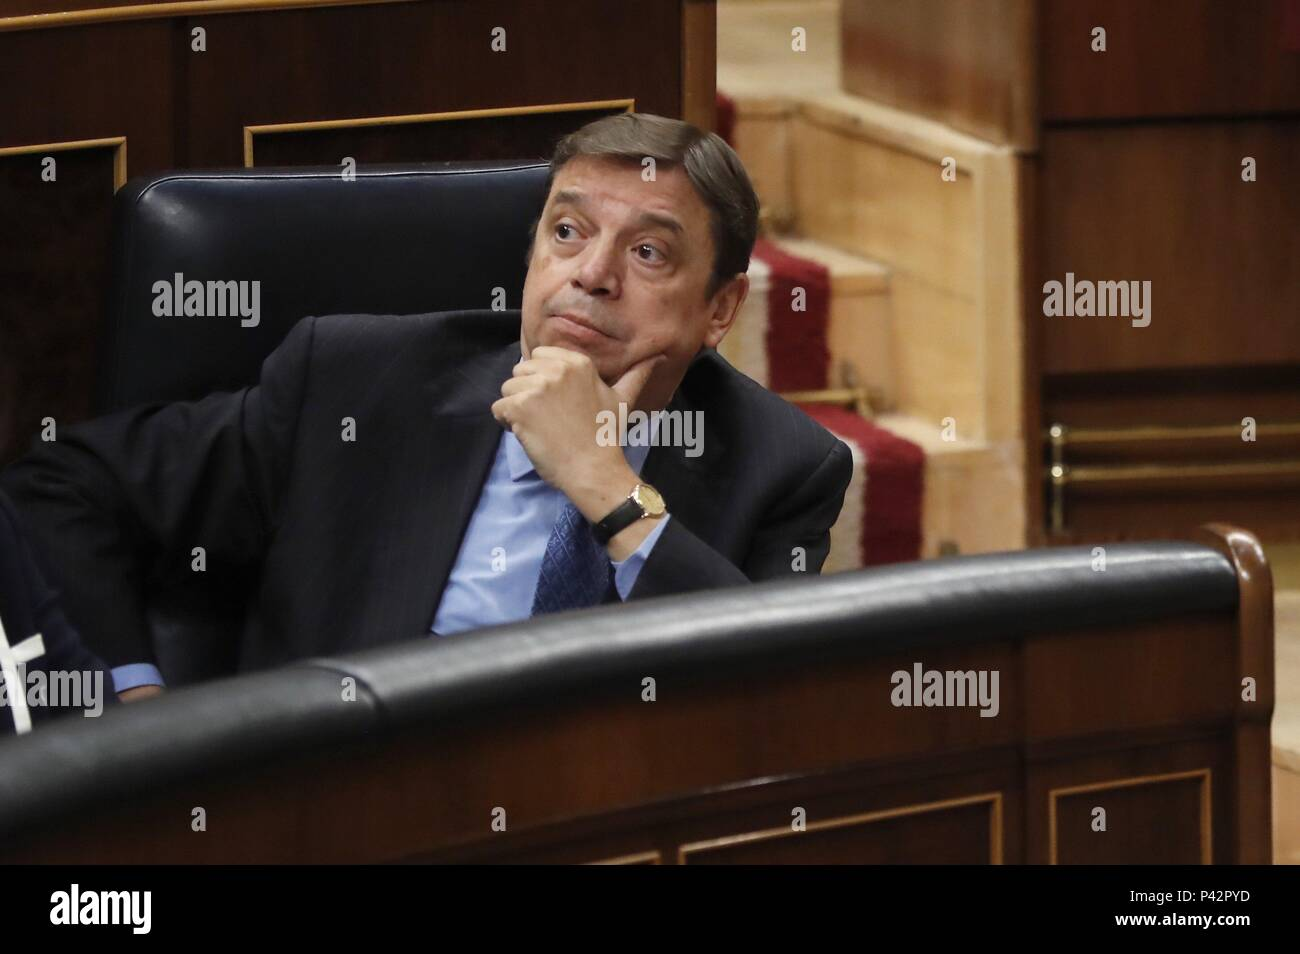 Madrid, Spain. 20th June, 2018. Spanish Minister of Agriculture, Luis Planas, attends question time at the Lower House in Madrid, Spain, 20 June 2018. Credit: Javier Lizon/EFE/Alamy Live News - Stock Image